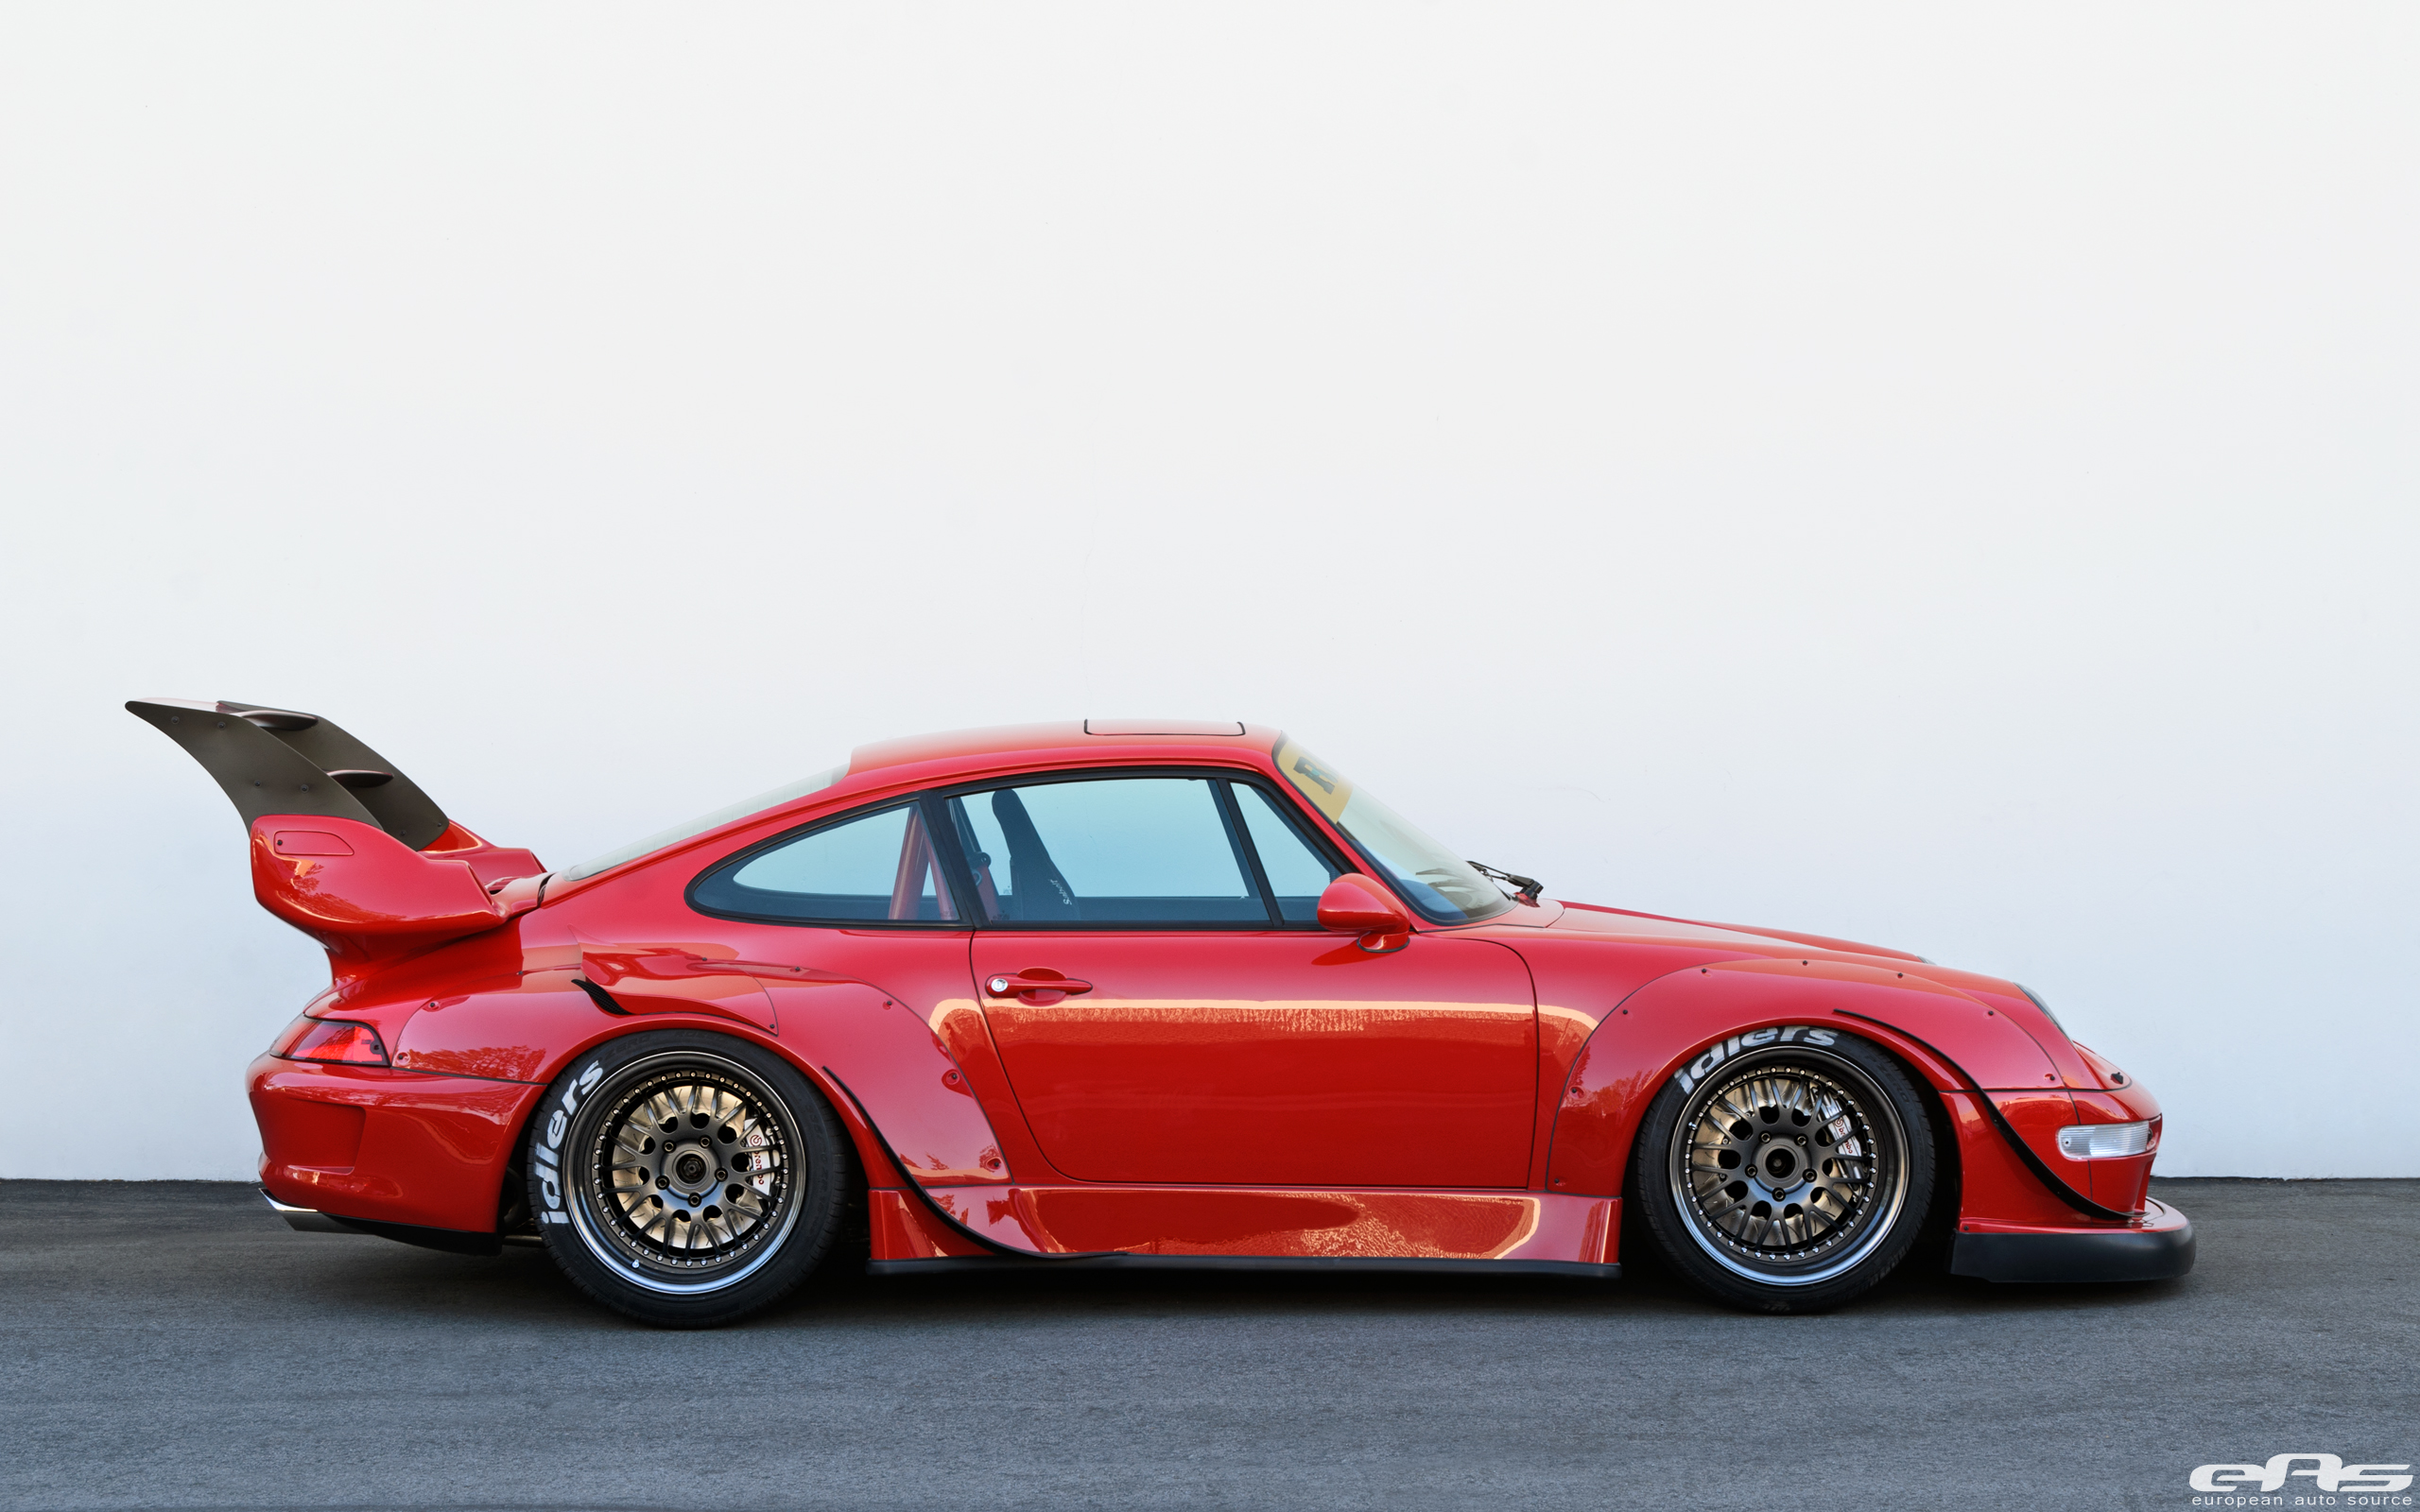 Guards Red Rauh Welt Begriff 993 911 Bmw Performance